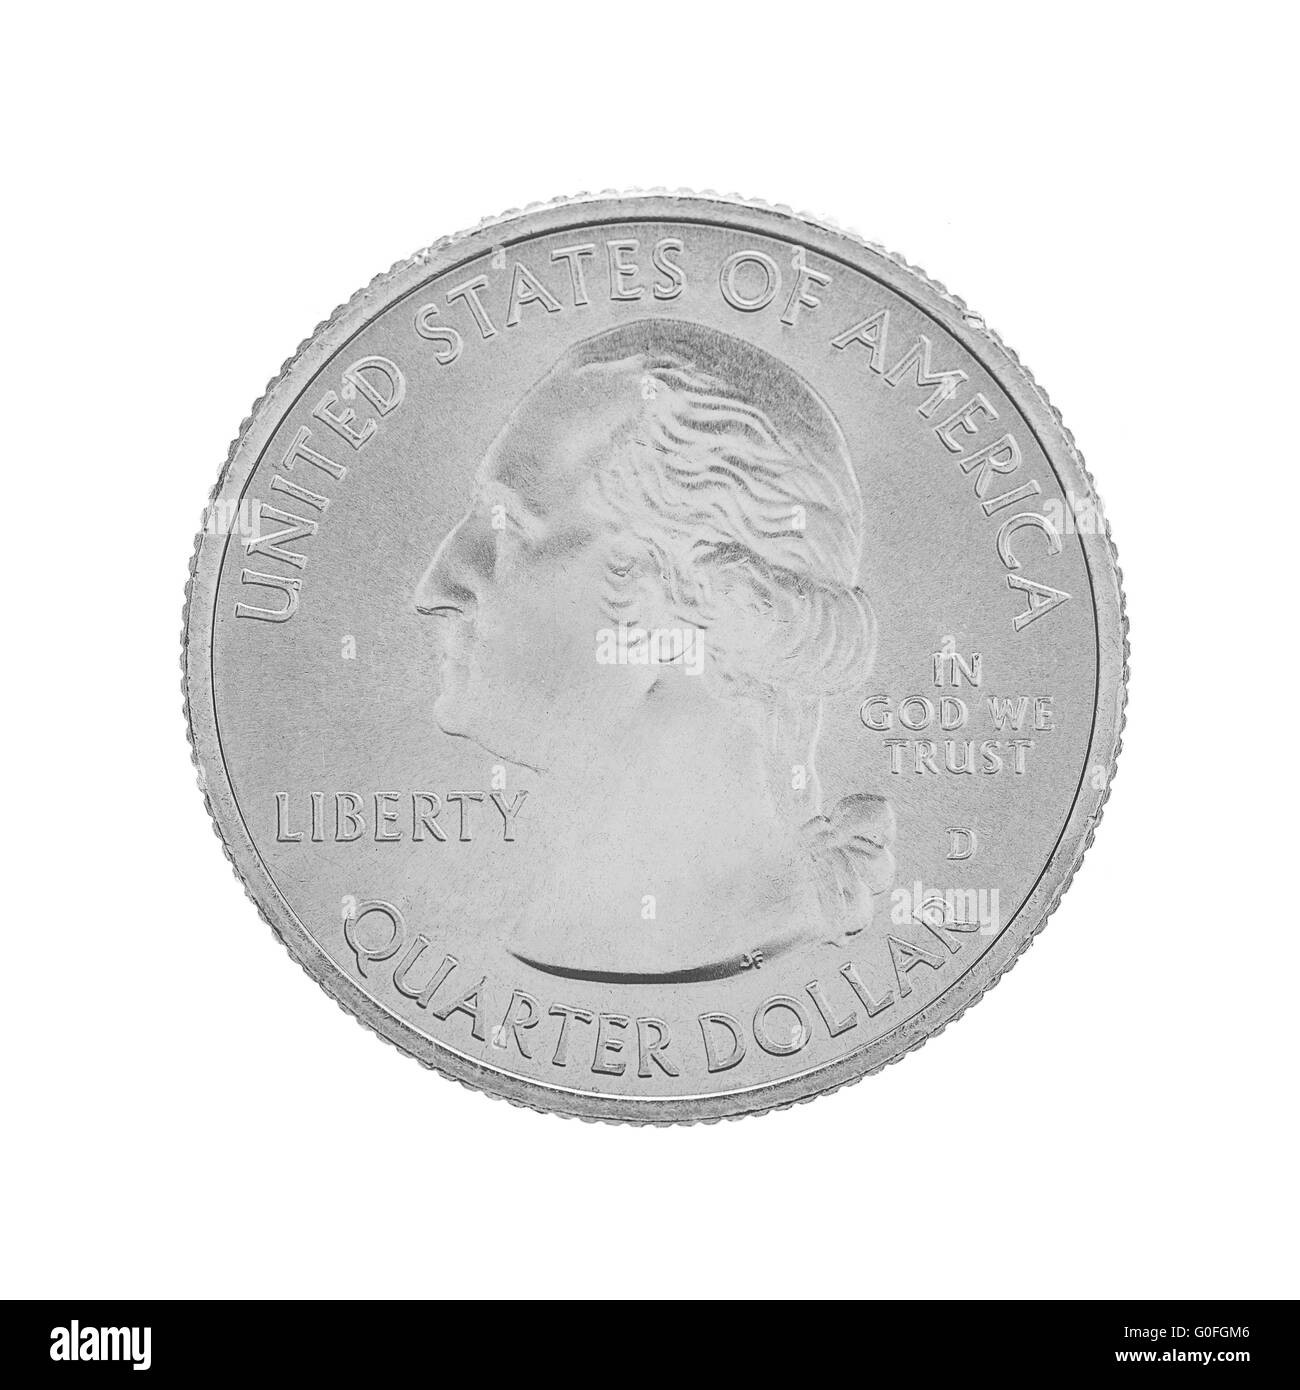 American one quarter coin - Stock Image